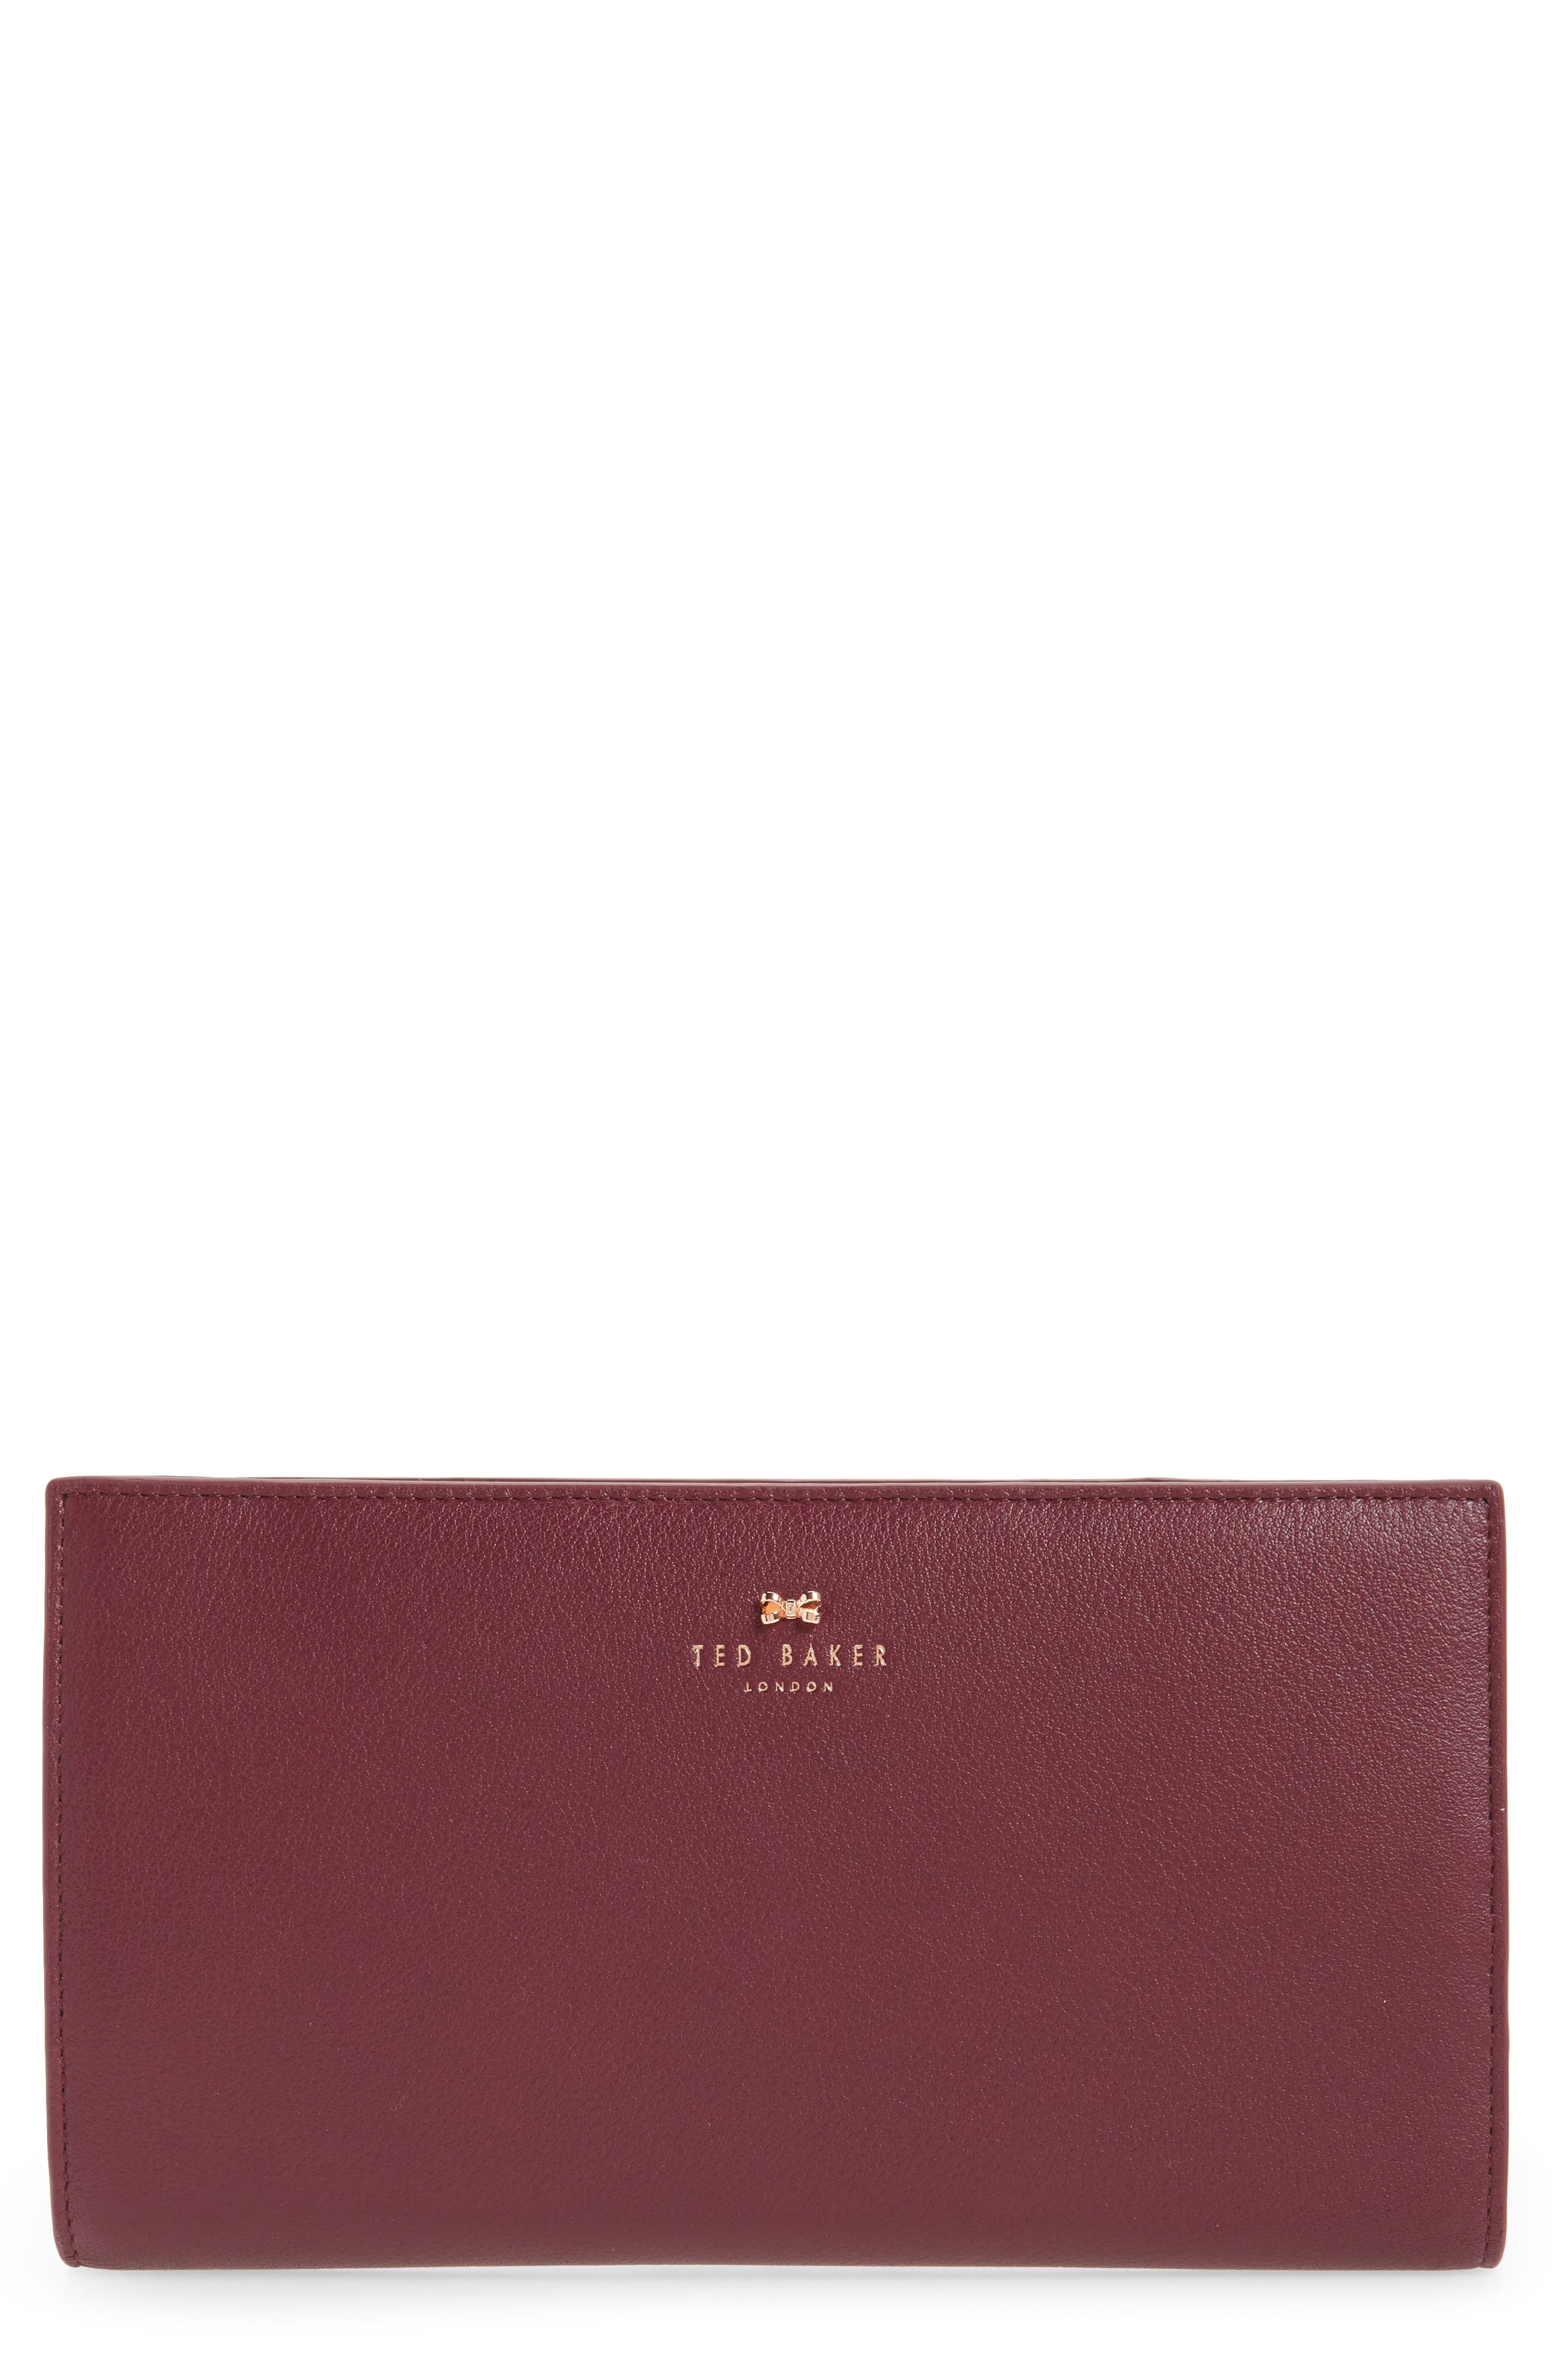 Ted Baker London Dolle Leather Travel Wallet